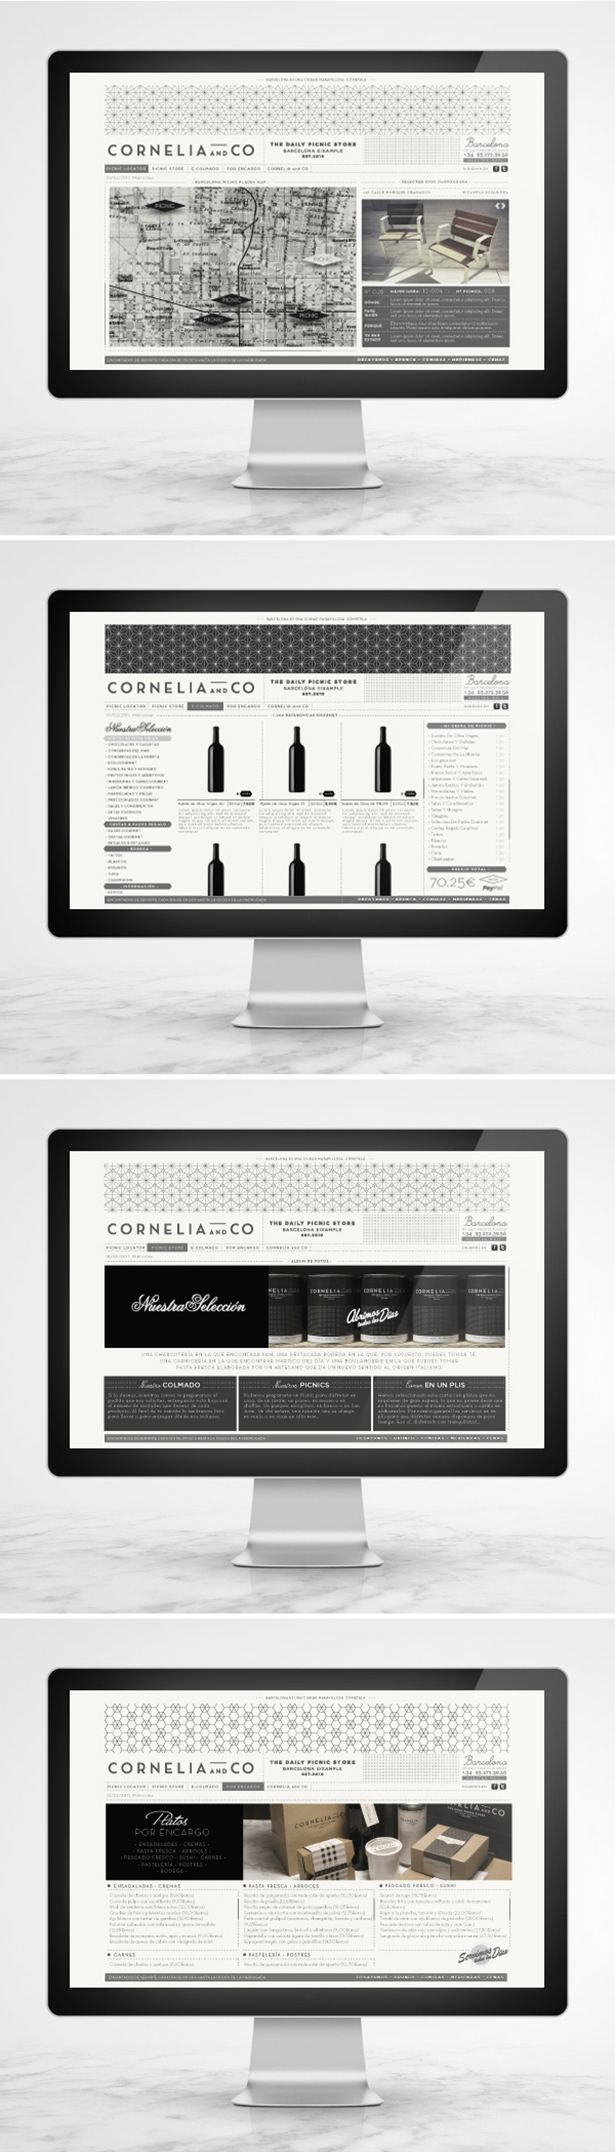 Cornelia and Co Barcelona Daily Picnic Store Branding Packaging